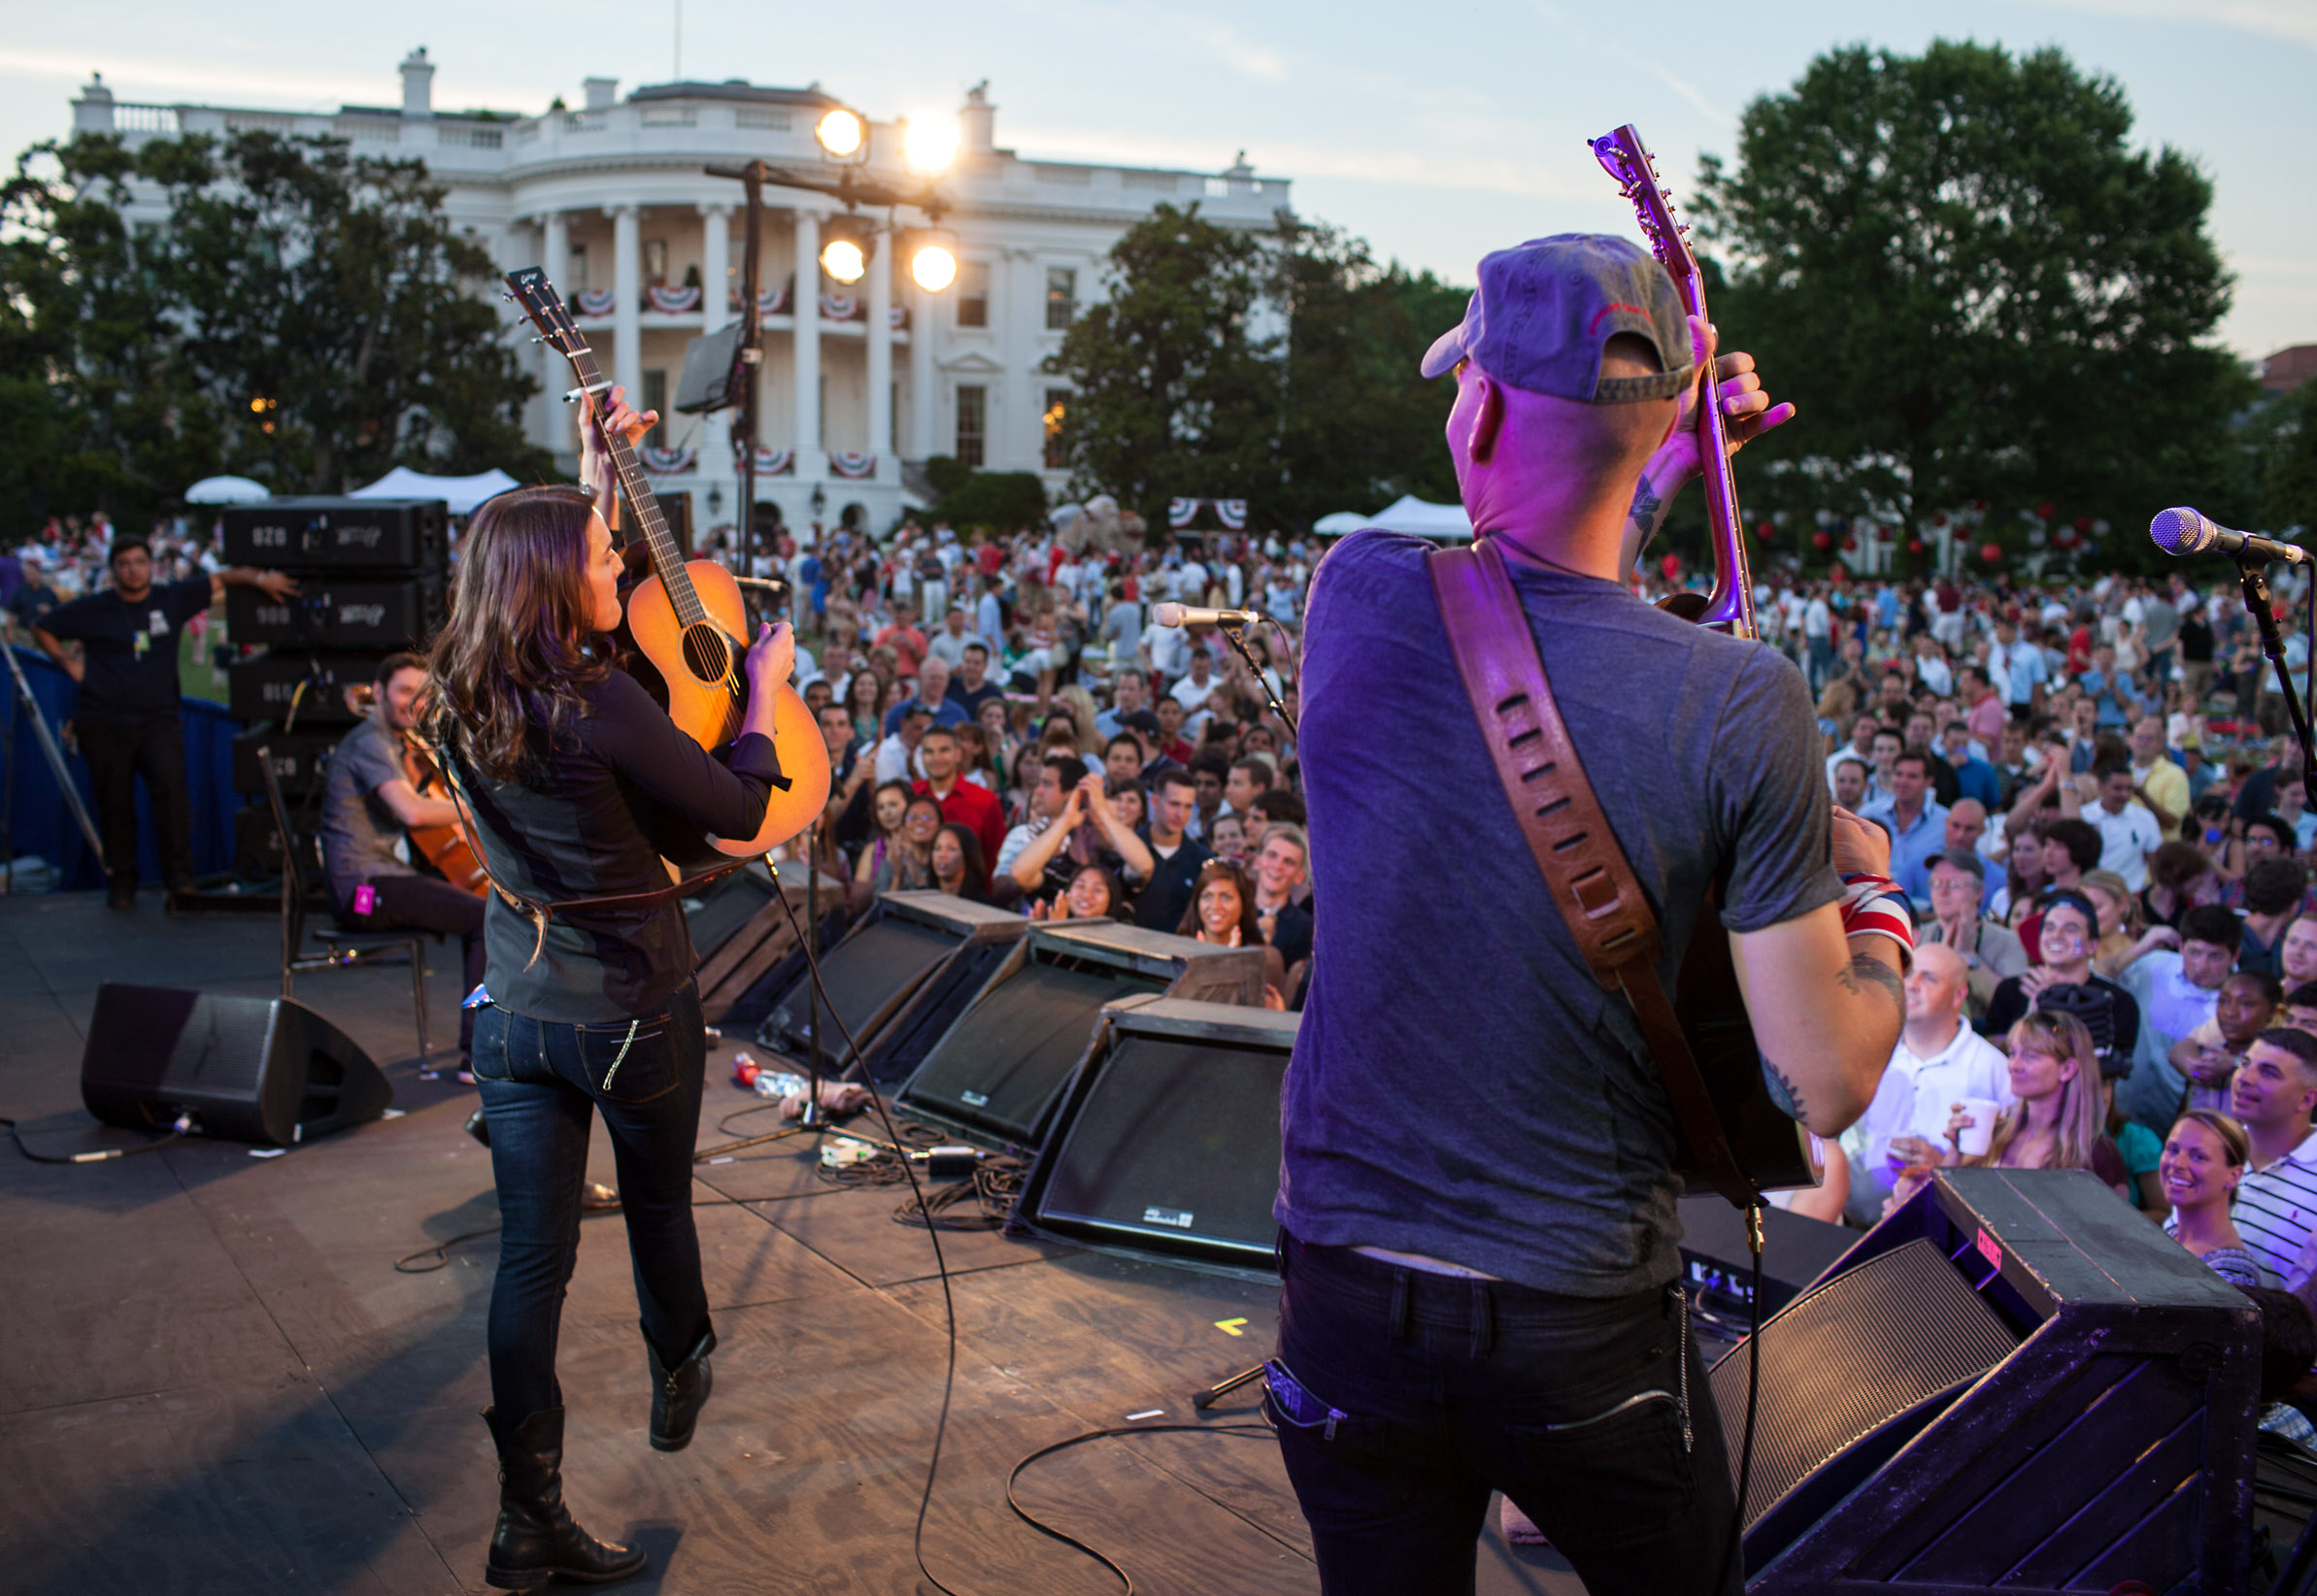 """July 4, 2010                               Pete Souza: """"Every year, we have a different band, or sometimes two bands, perform for military families and White House staff. It's actually the United Service Organizations that sponsors it. Even though it's on our turf, the USO and most bands never wanted me to be on the stage. But this year, I happened to know Brandi Carlile and her manager, so asked them if I could be onstage during their performance to line up the White House in the background.""""                               President Barack Obama and First Lady Michelle Obama host a Fourth of July celebration with military personnel and their families on the South Lawn of the White House, July 4, 2010."""